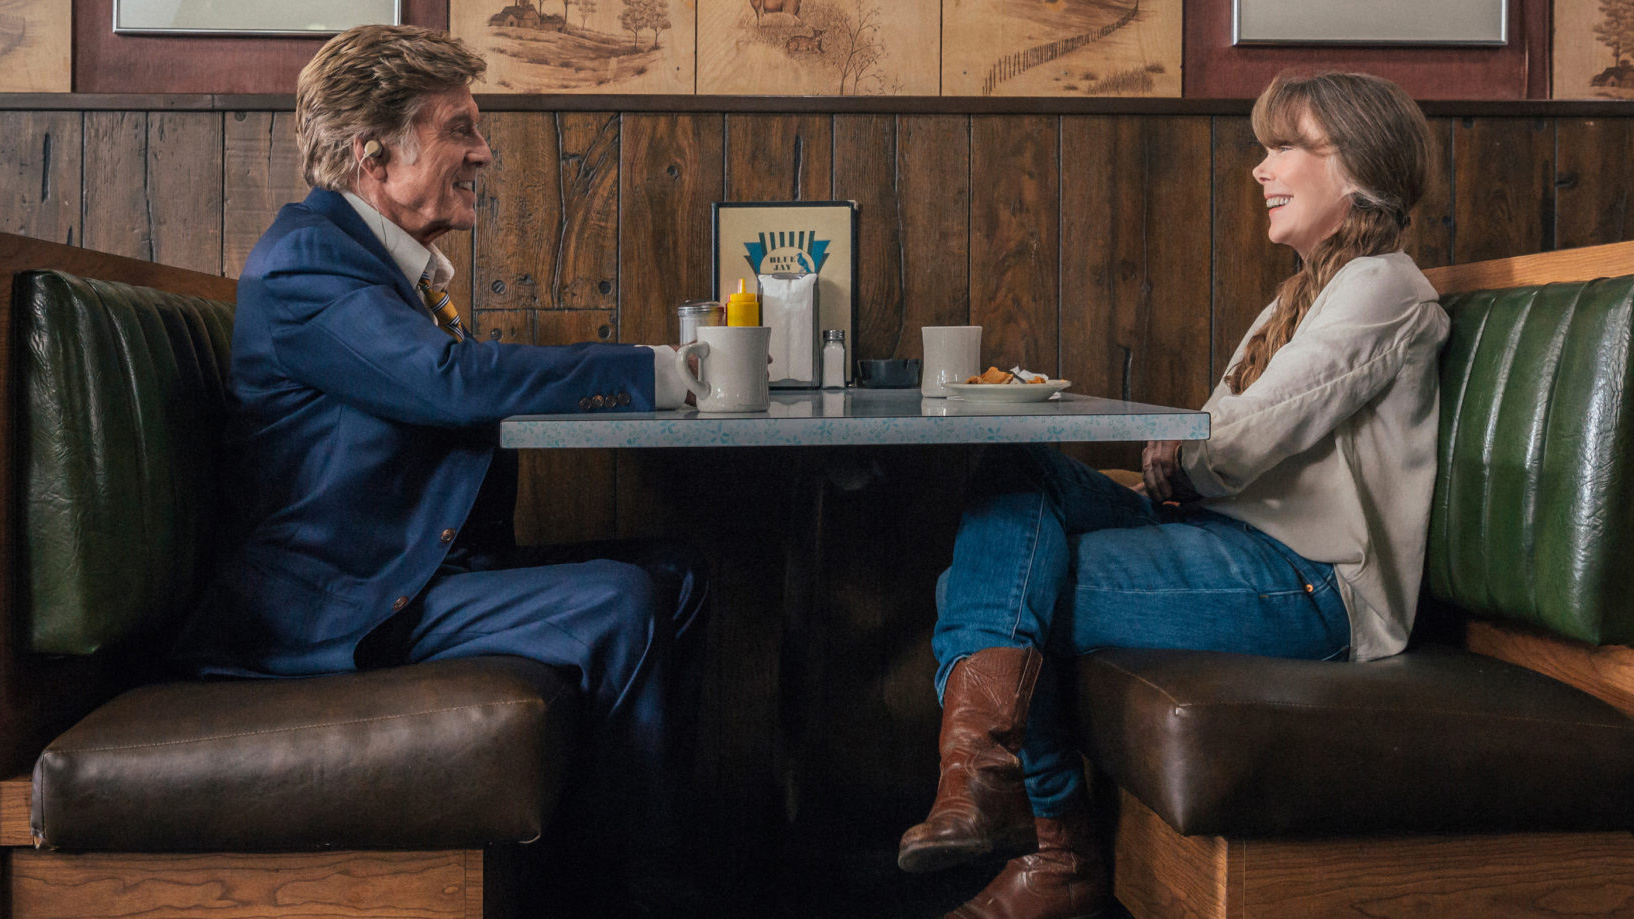 Old Man & The Gun, il crepuscolo di Robert Redford nel film di David Lowery: la recensione